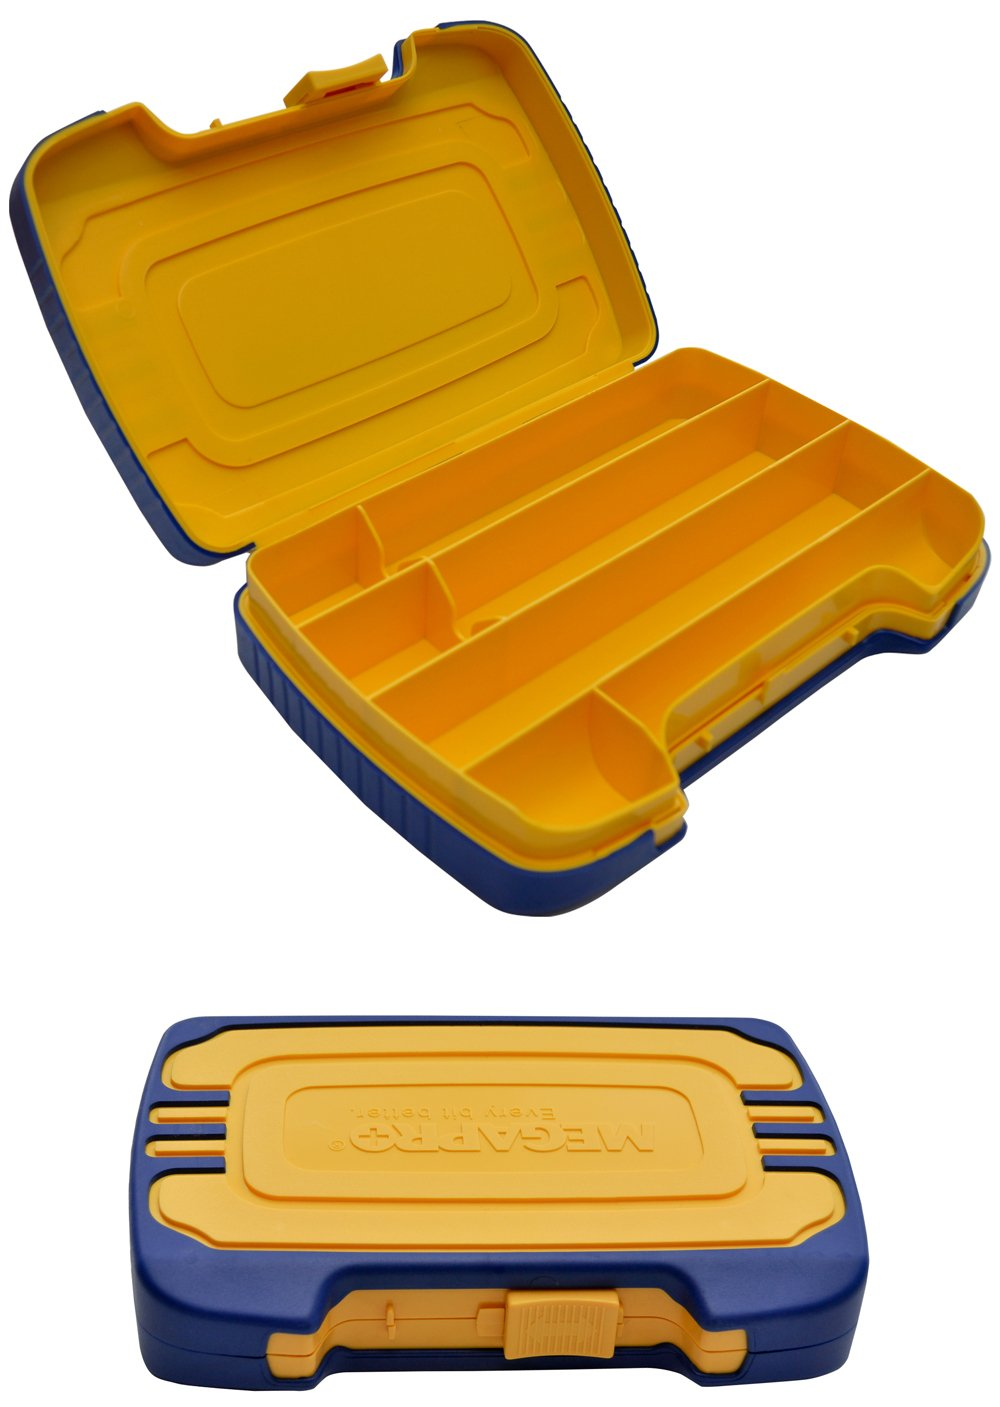 Megapro Plastic Tool Case for MegaPro Screwdrivers, Tips and Extensions, 7 Inch Length x 5 Inch Width x 3 Inch Height (6KITCASE)